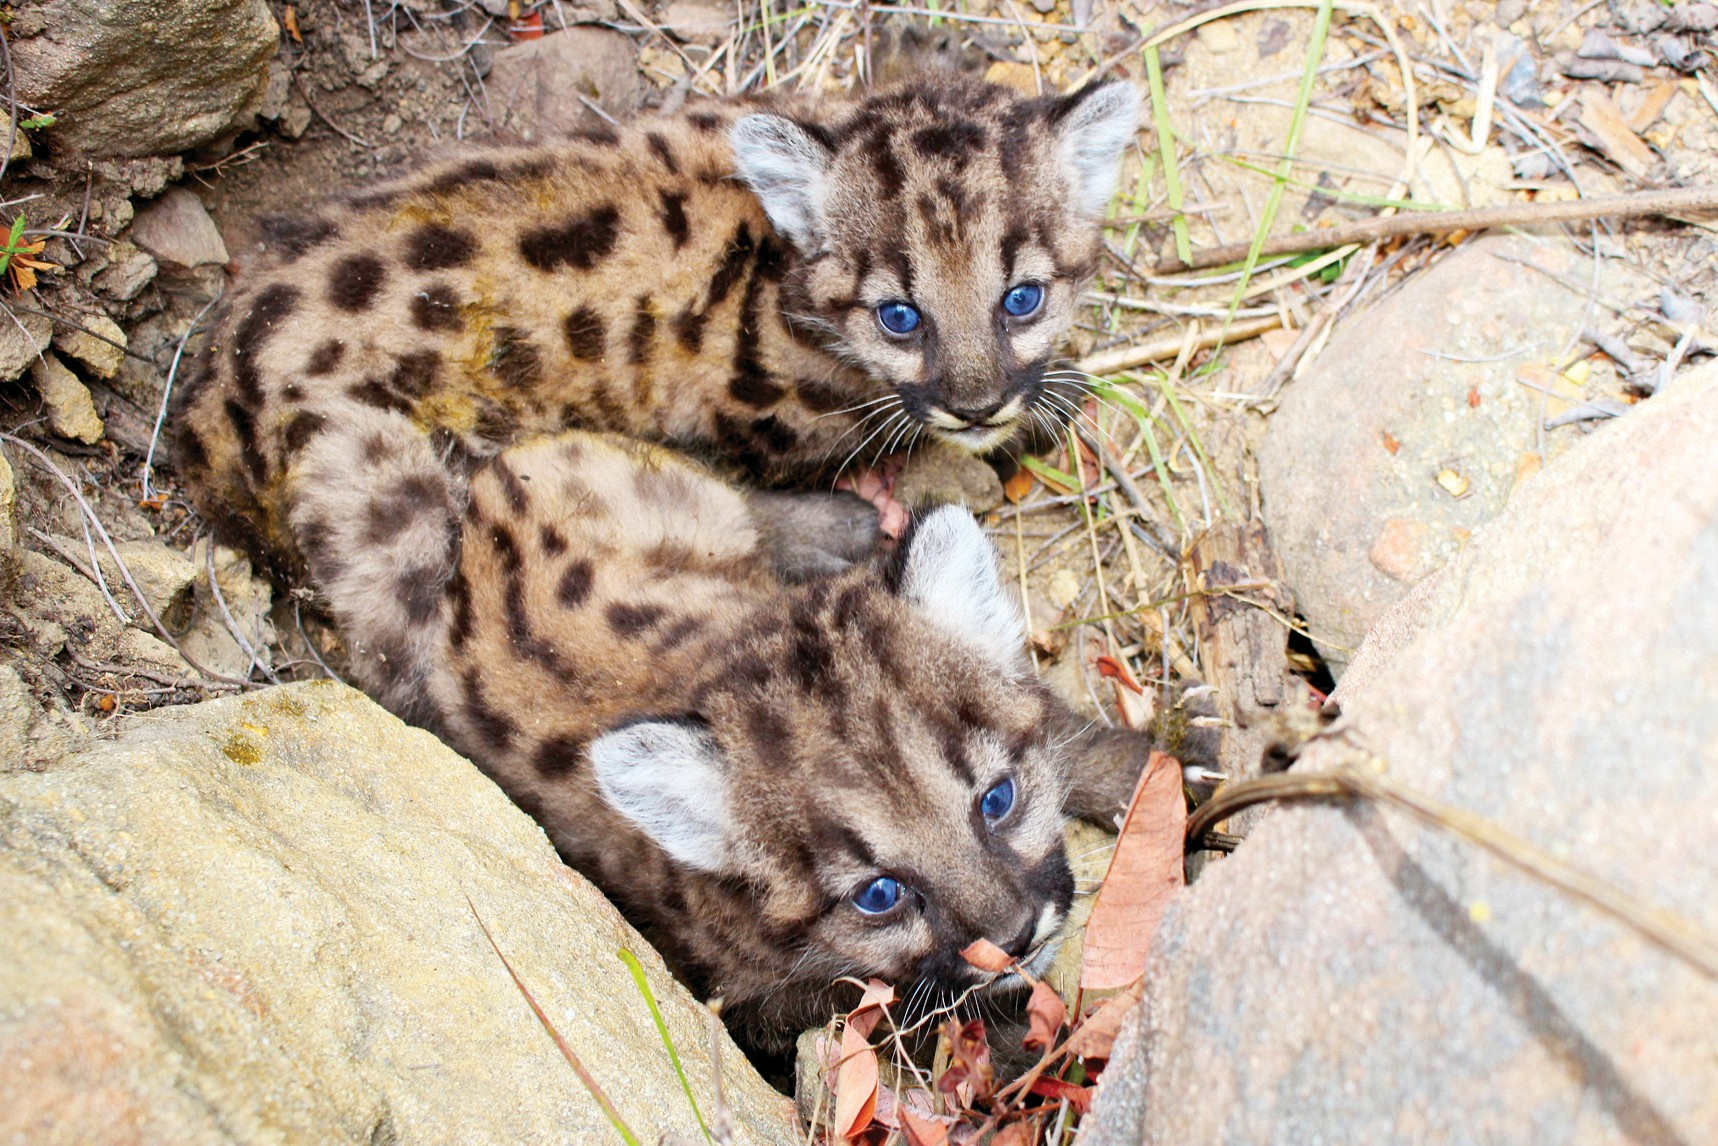 SIBLINGS—P-59 and P-60 are the 13th litter of kittens marked by National Park Service biologists at a den site. At left, the suspected father, P-12, on the prowl in this park service photo from 2011. Courtesy of National Park Service